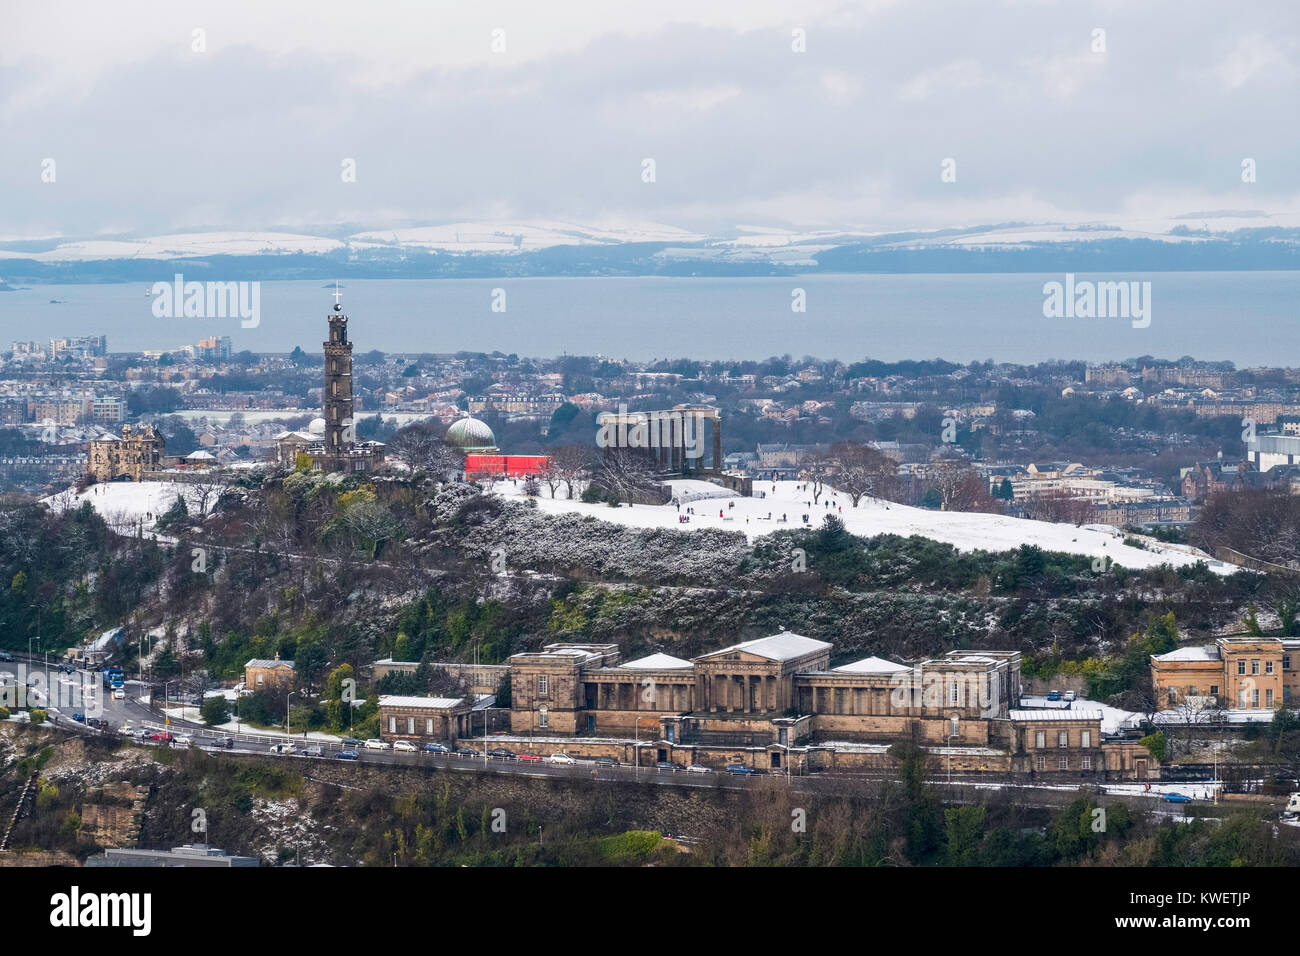 View towards Calton Hill and former Royal High School after snow fall in Edinburgh during winter in Scotland, United - Stock Image